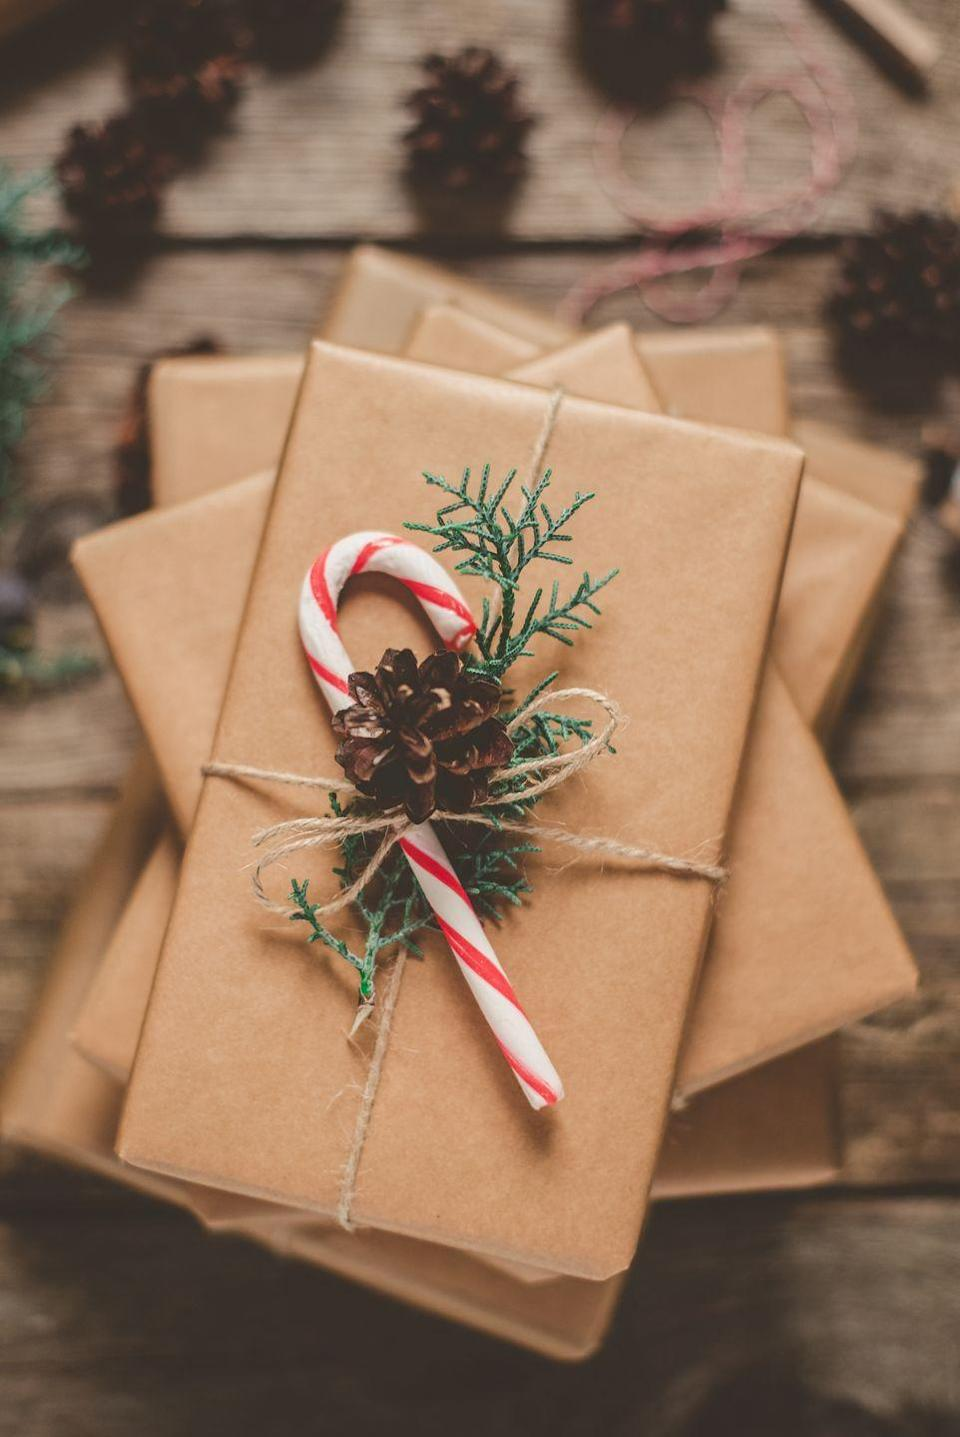 """<p>In this traditional office party game, participants select a name at random (usually out of a hat), then shop for a small <a href=""""https://www.oprahmag.com/life/g34436292/secret-santa-gifts/"""" rel=""""nofollow noopener"""" target=""""_blank"""" data-ylk=""""slk:Secret Santa gift"""" class=""""link rapid-noclick-resp"""">Secret Santa gift</a> under about $20. If you're celebrating from a distance this year, you can still partake in the celebratory Christmas activity—simply arrange a game via mail. It takes a little more planning, but it's just as fun. </p>"""